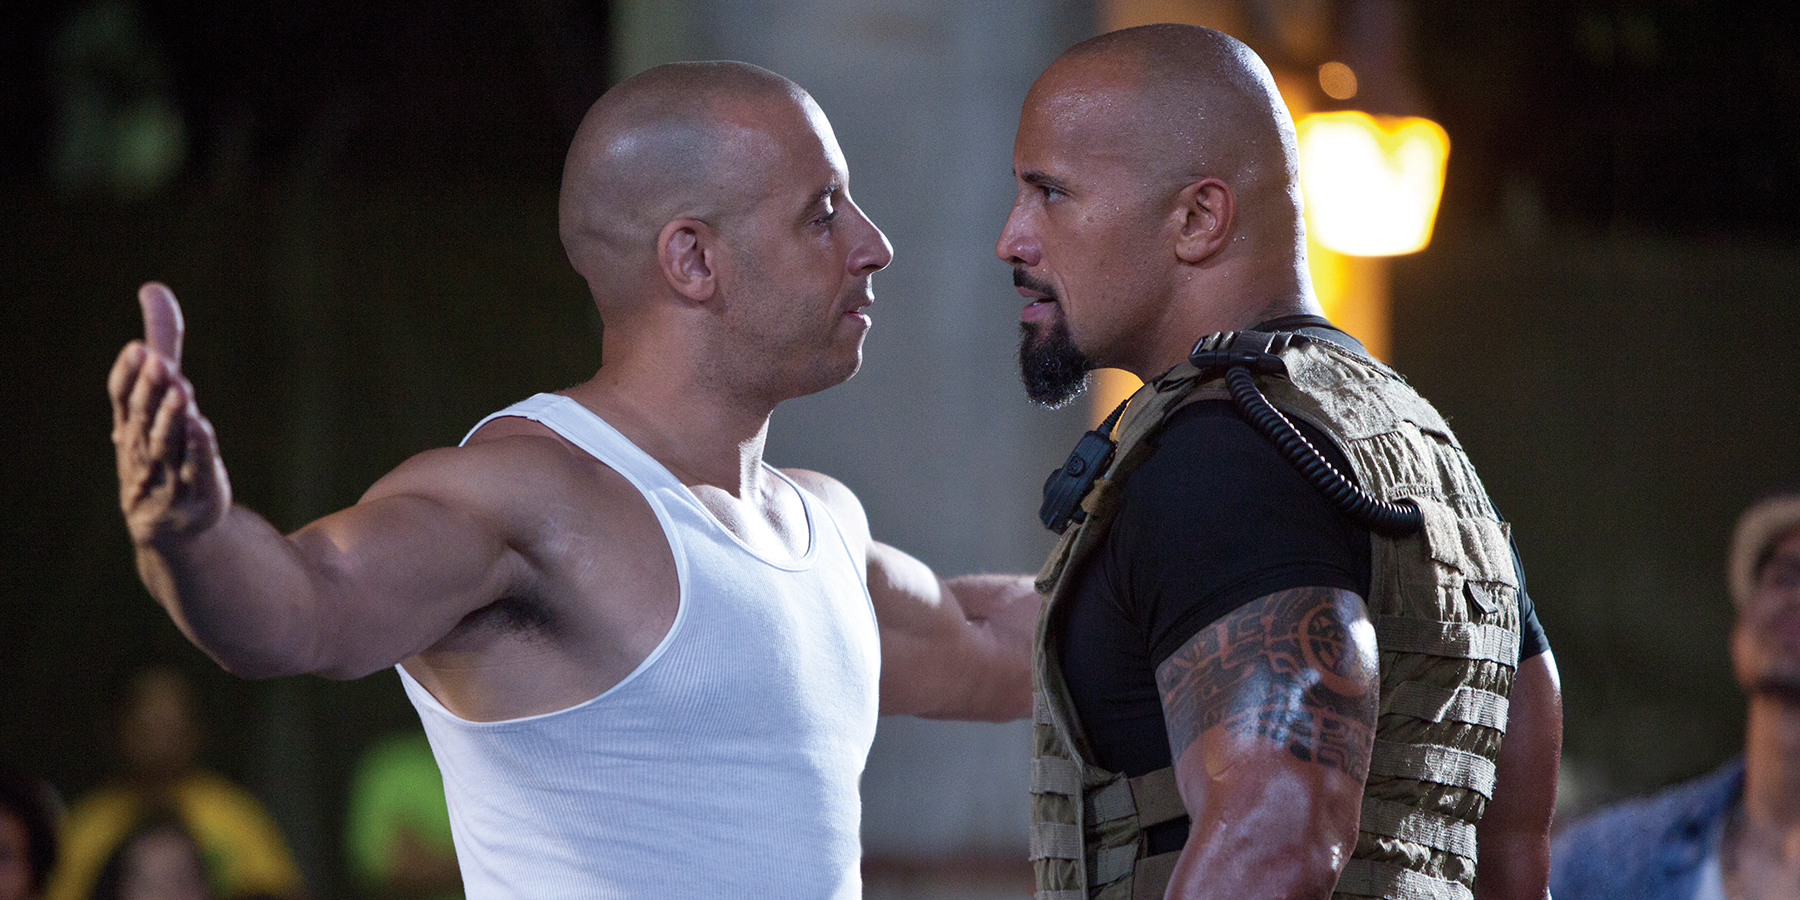 25 Things That Make No Sense About The Fast And Furious Movies